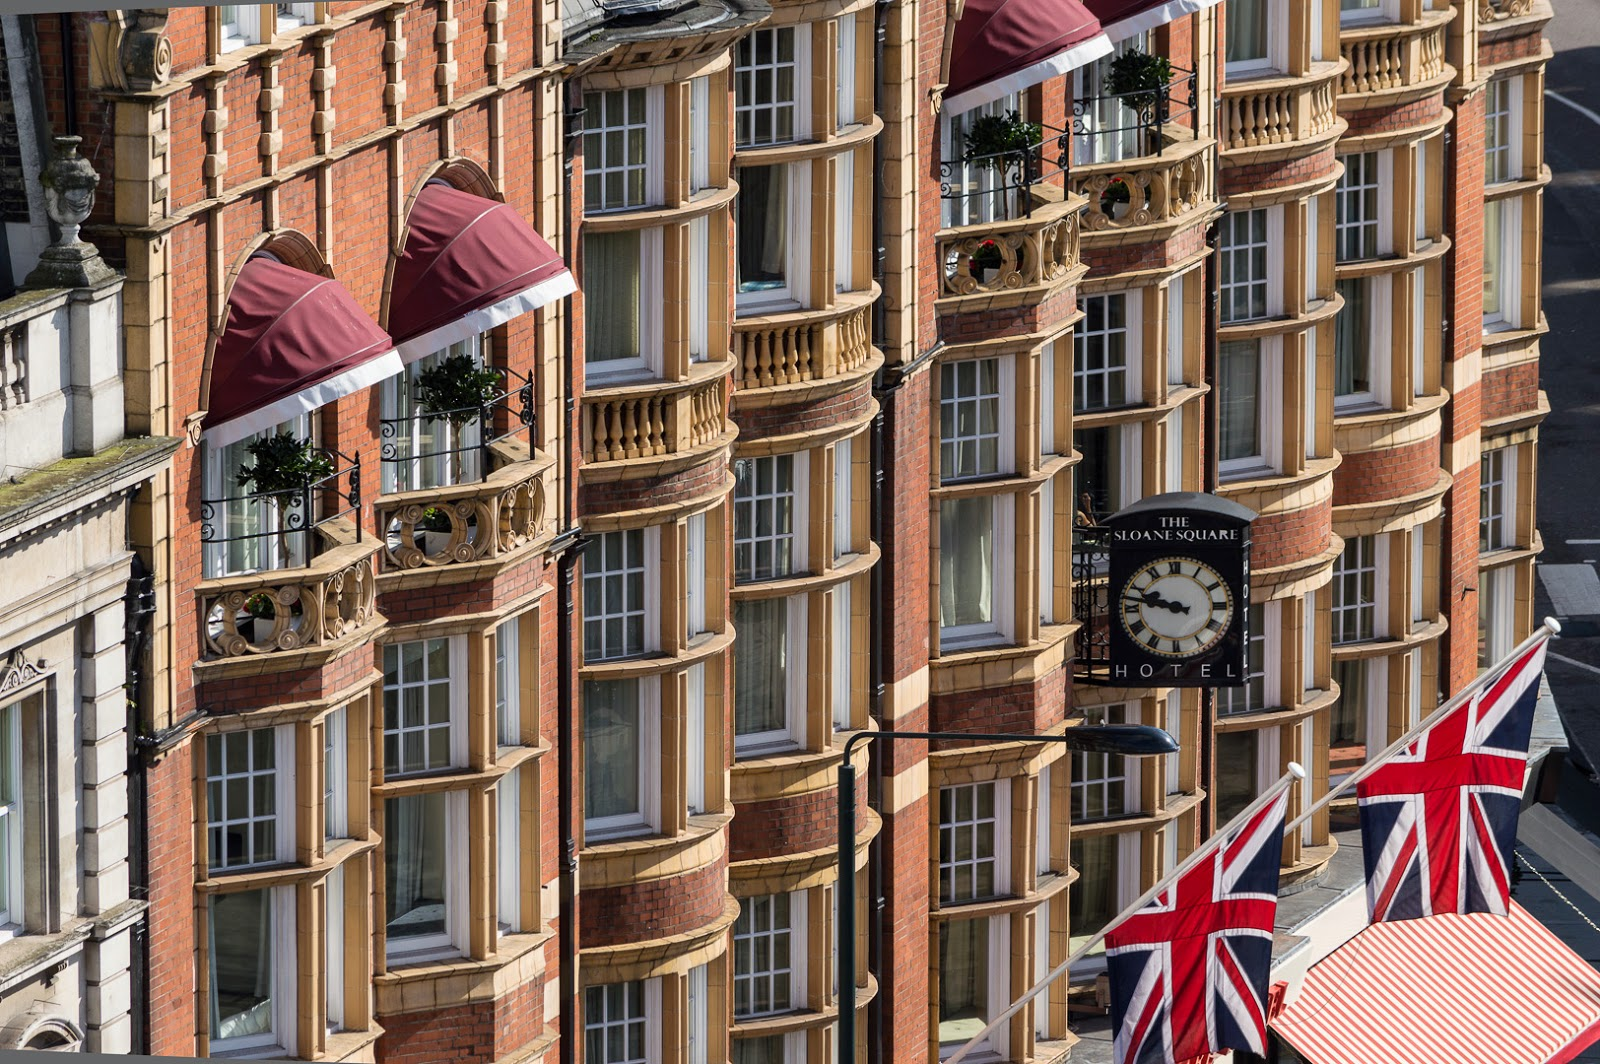 London Hotels - A Gateway To Your Dream Accommodation